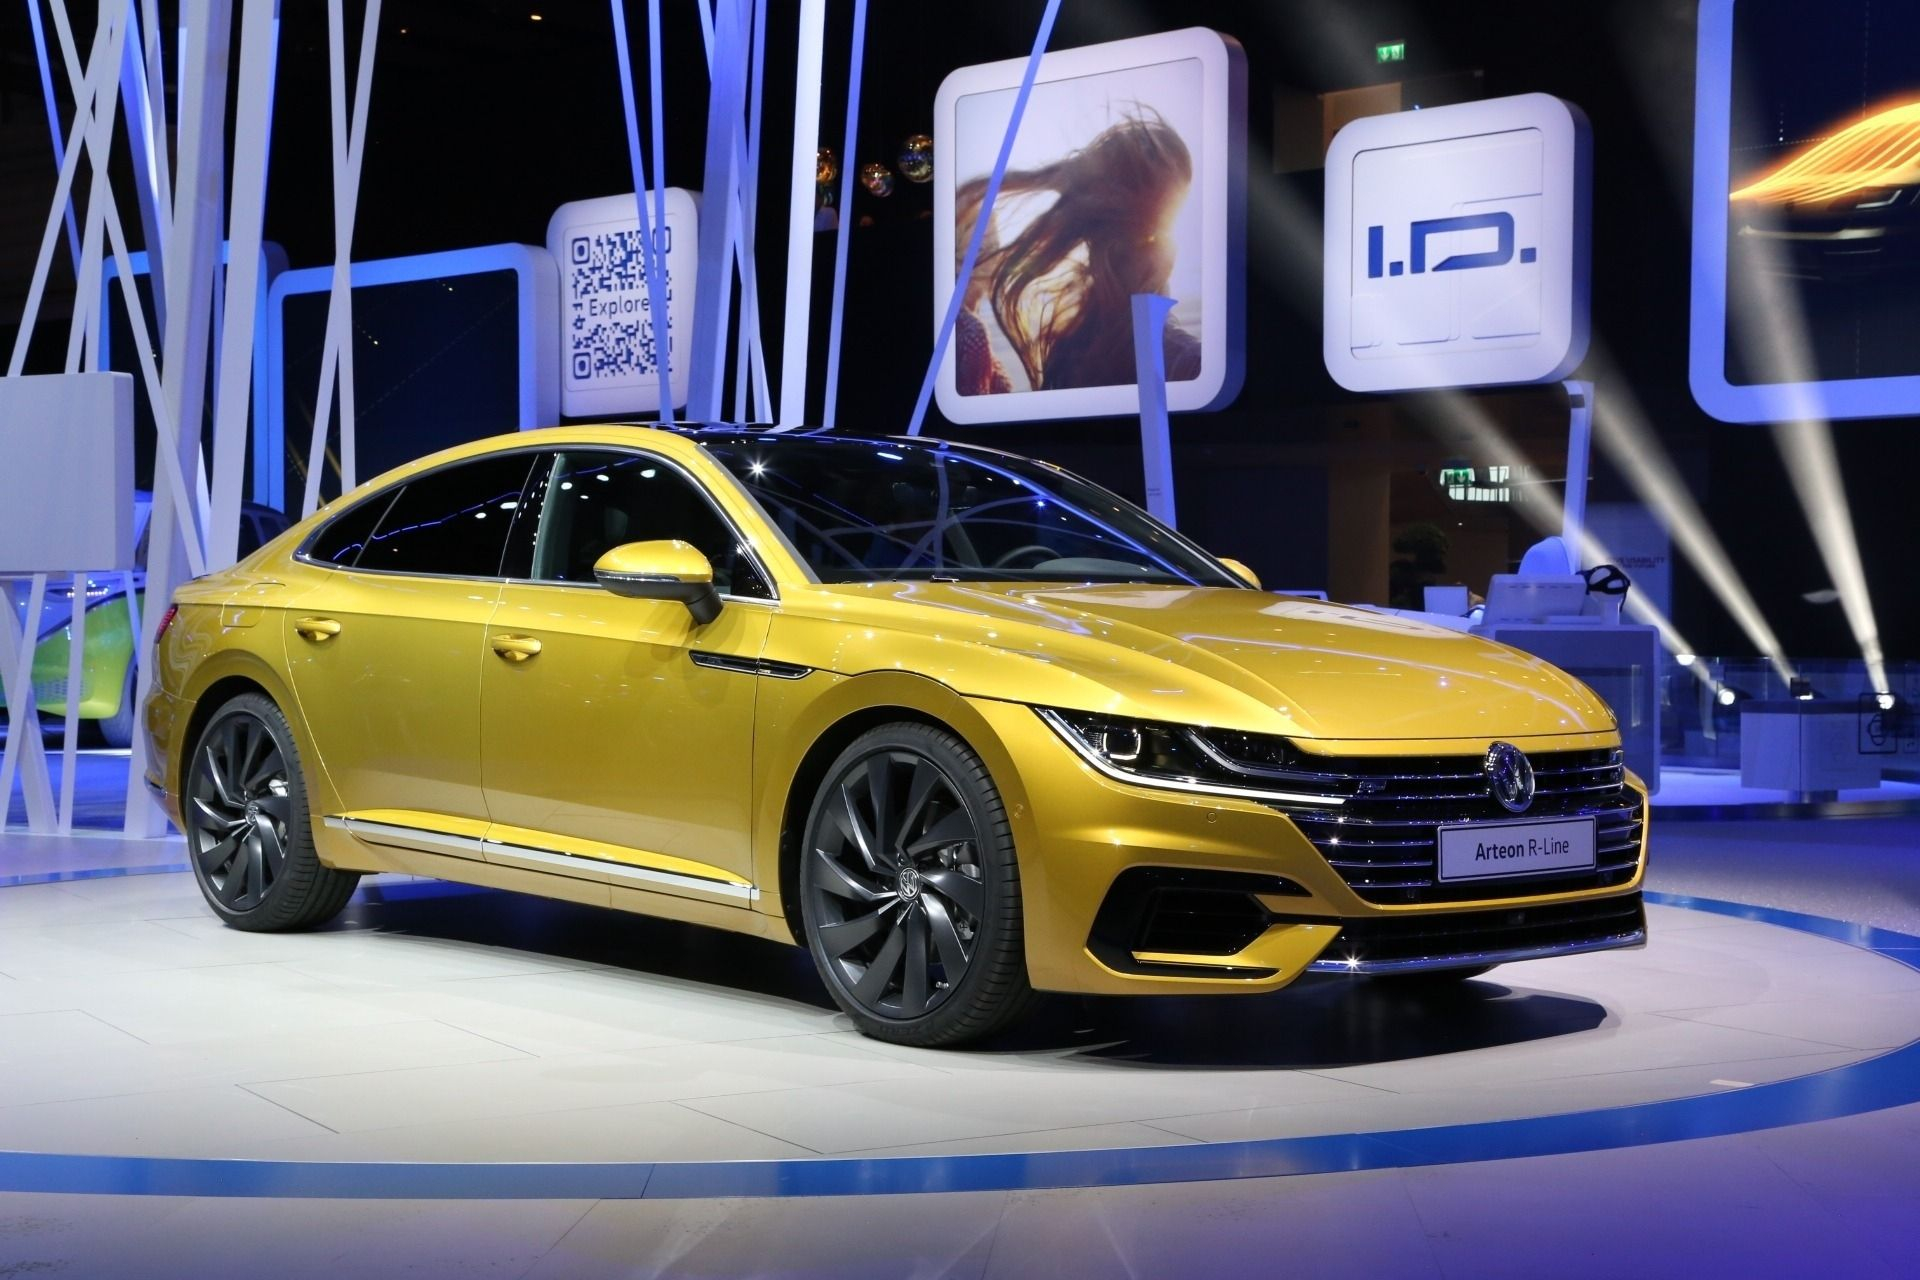 38 New Next Generation Vw Cc Specs and Review